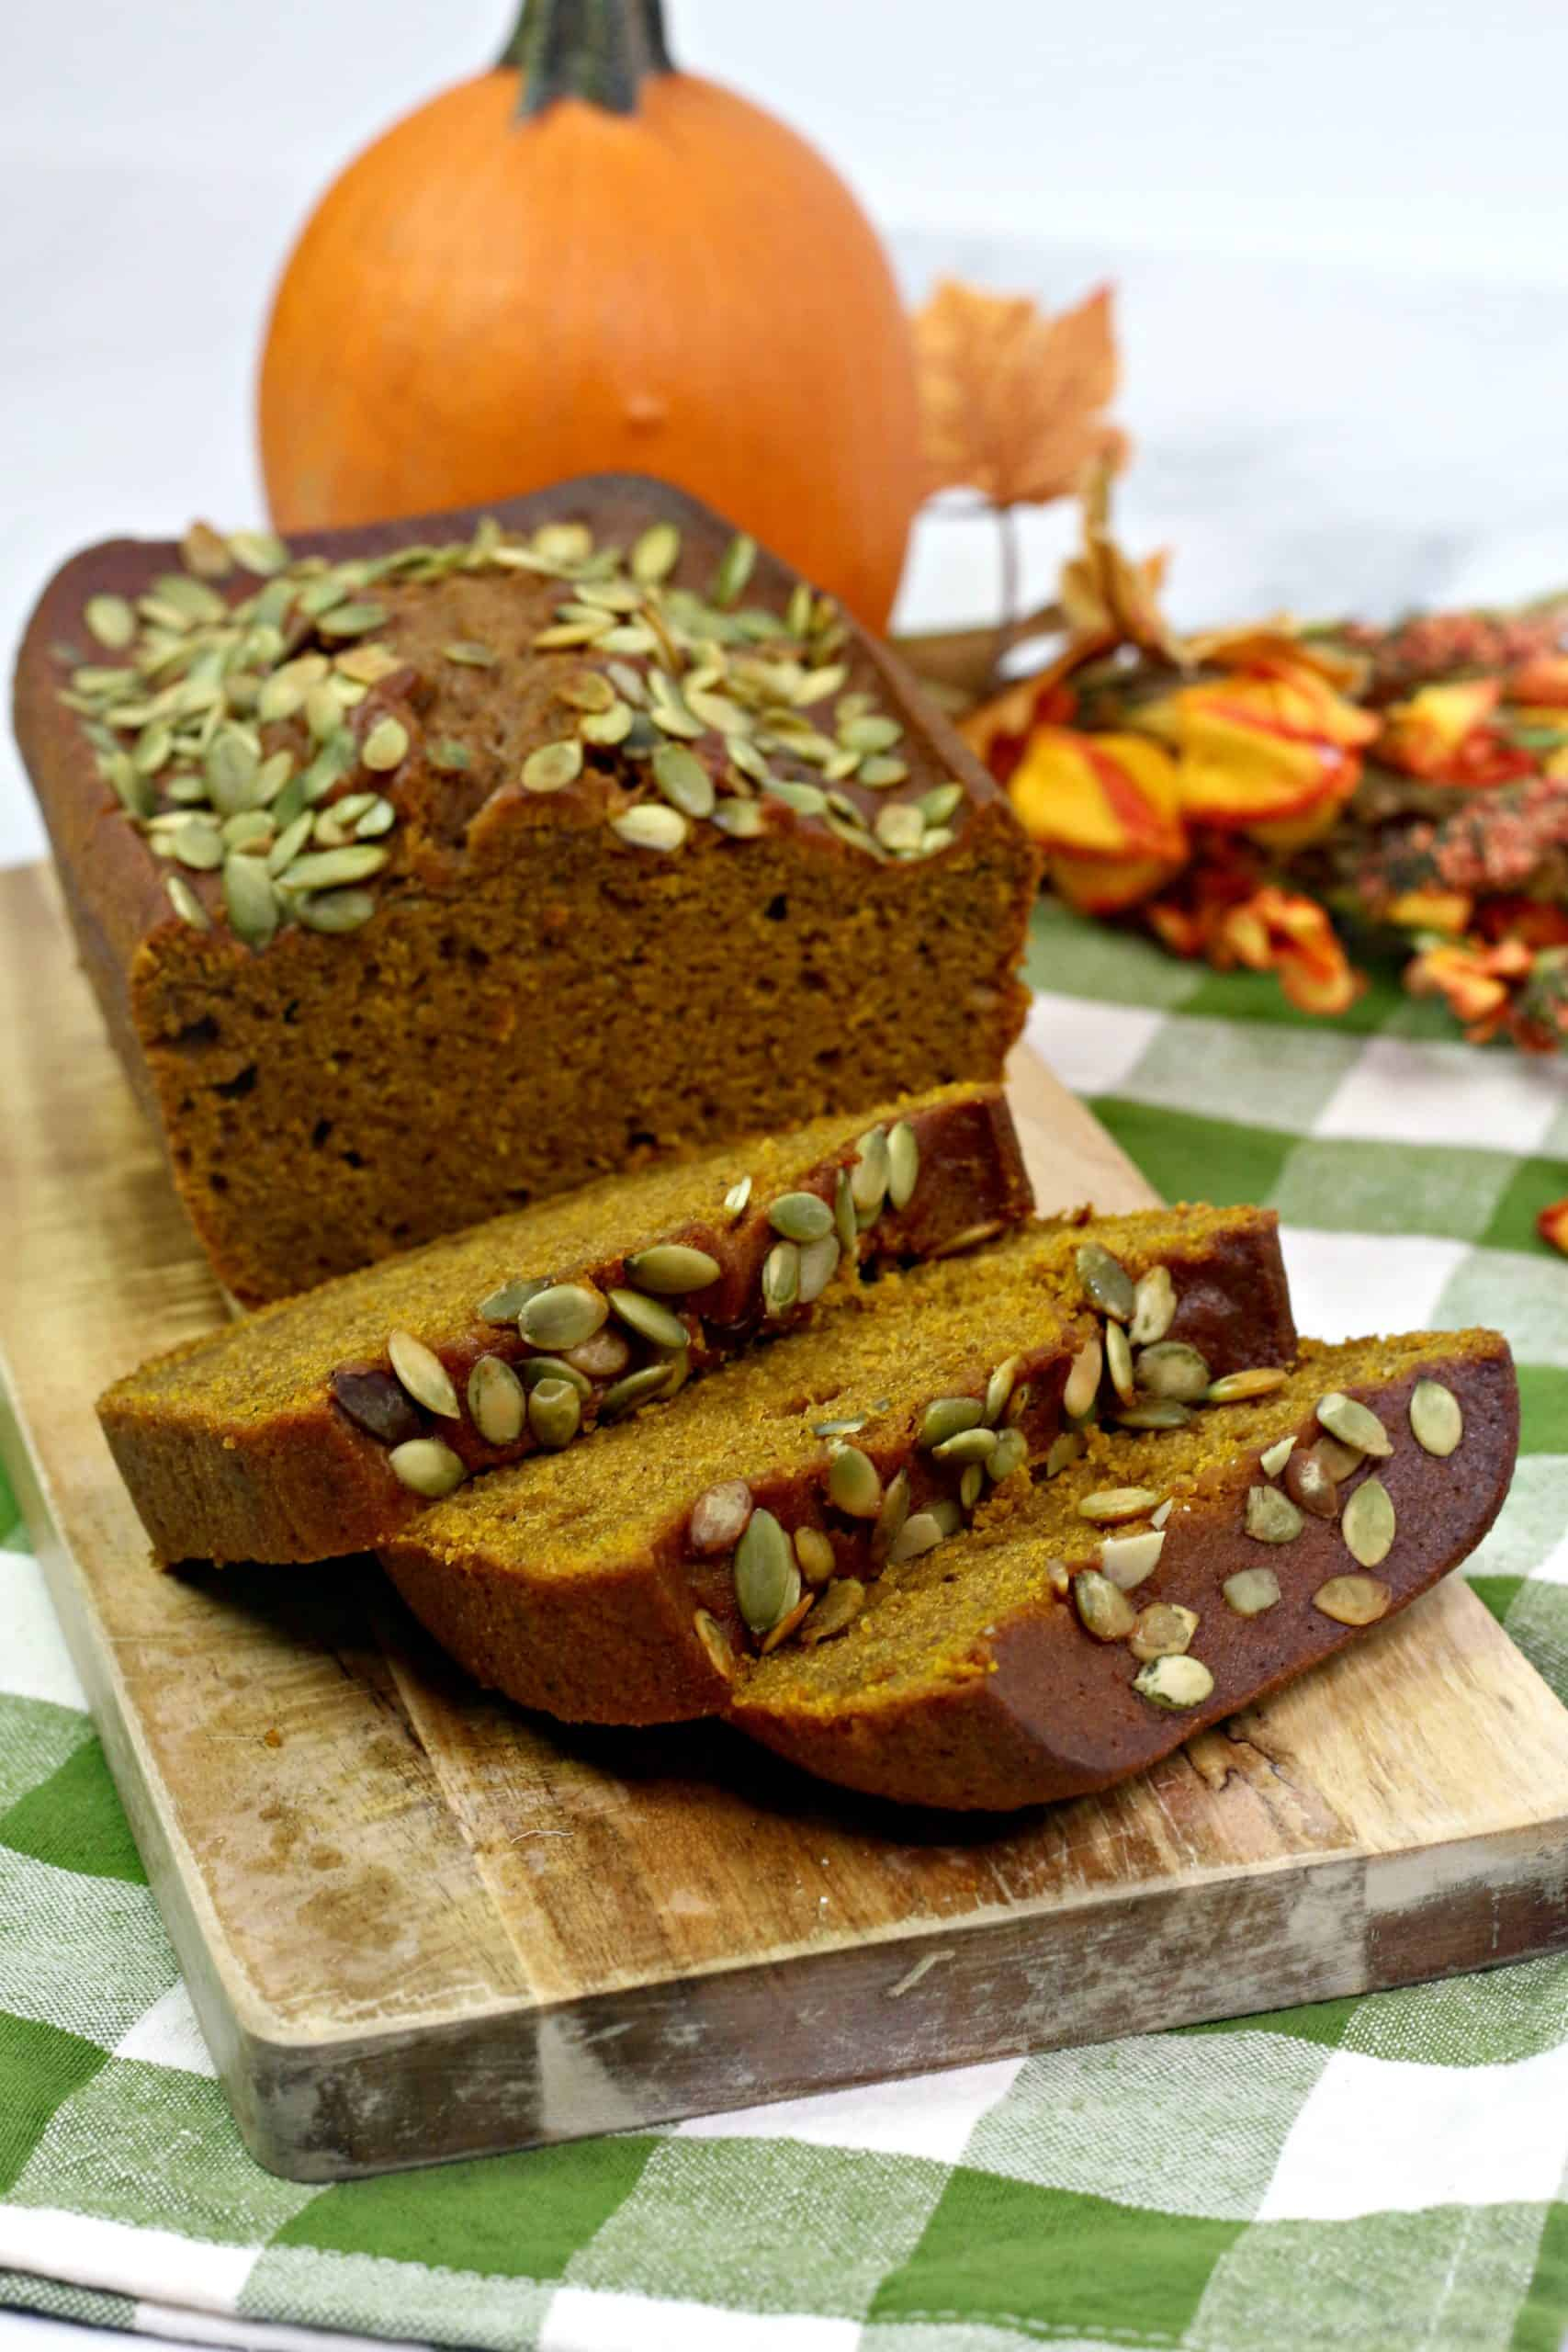 Starbucks Pumpkin Loaf